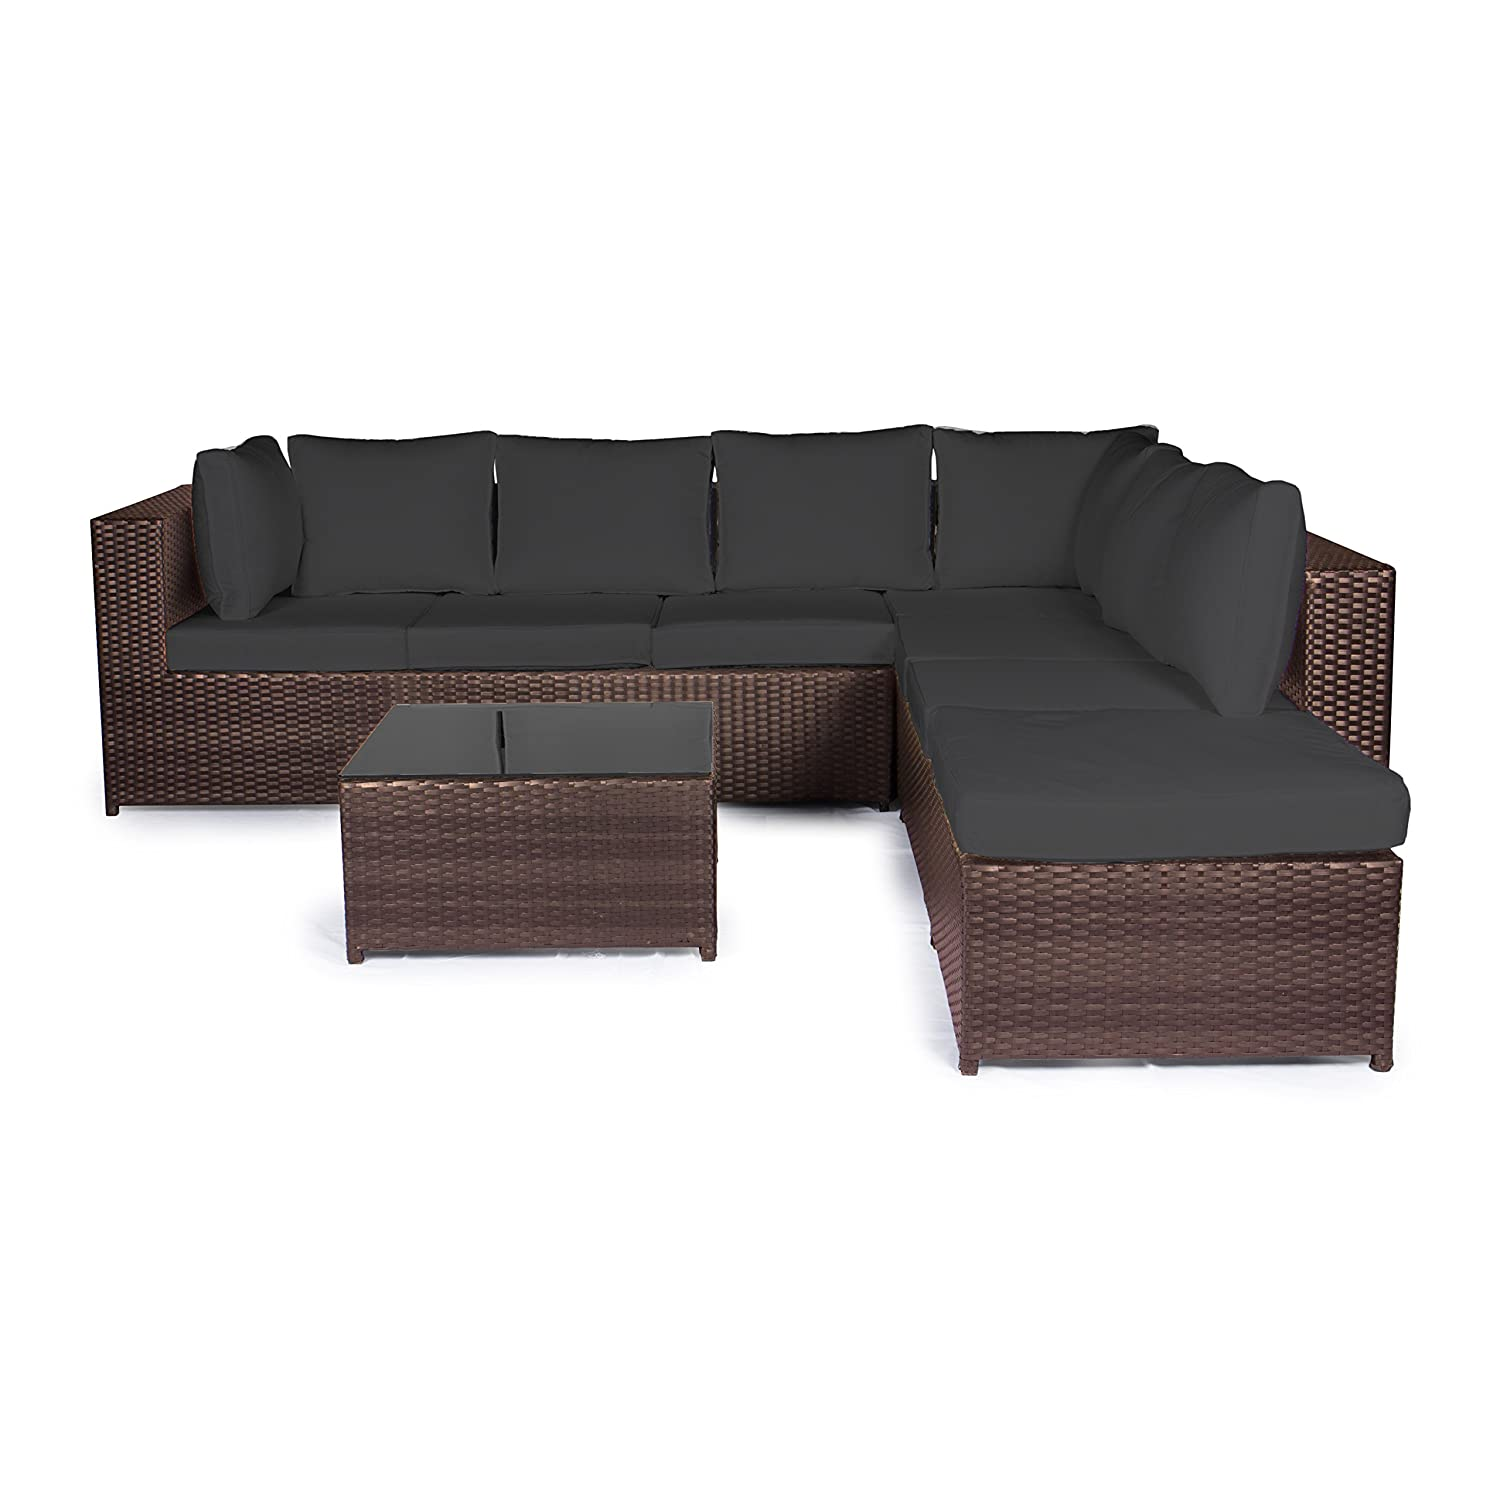 vanage gartenm bel set xxxl montreal in braun schwarz sch ne rattan gartengarnitur. Black Bedroom Furniture Sets. Home Design Ideas